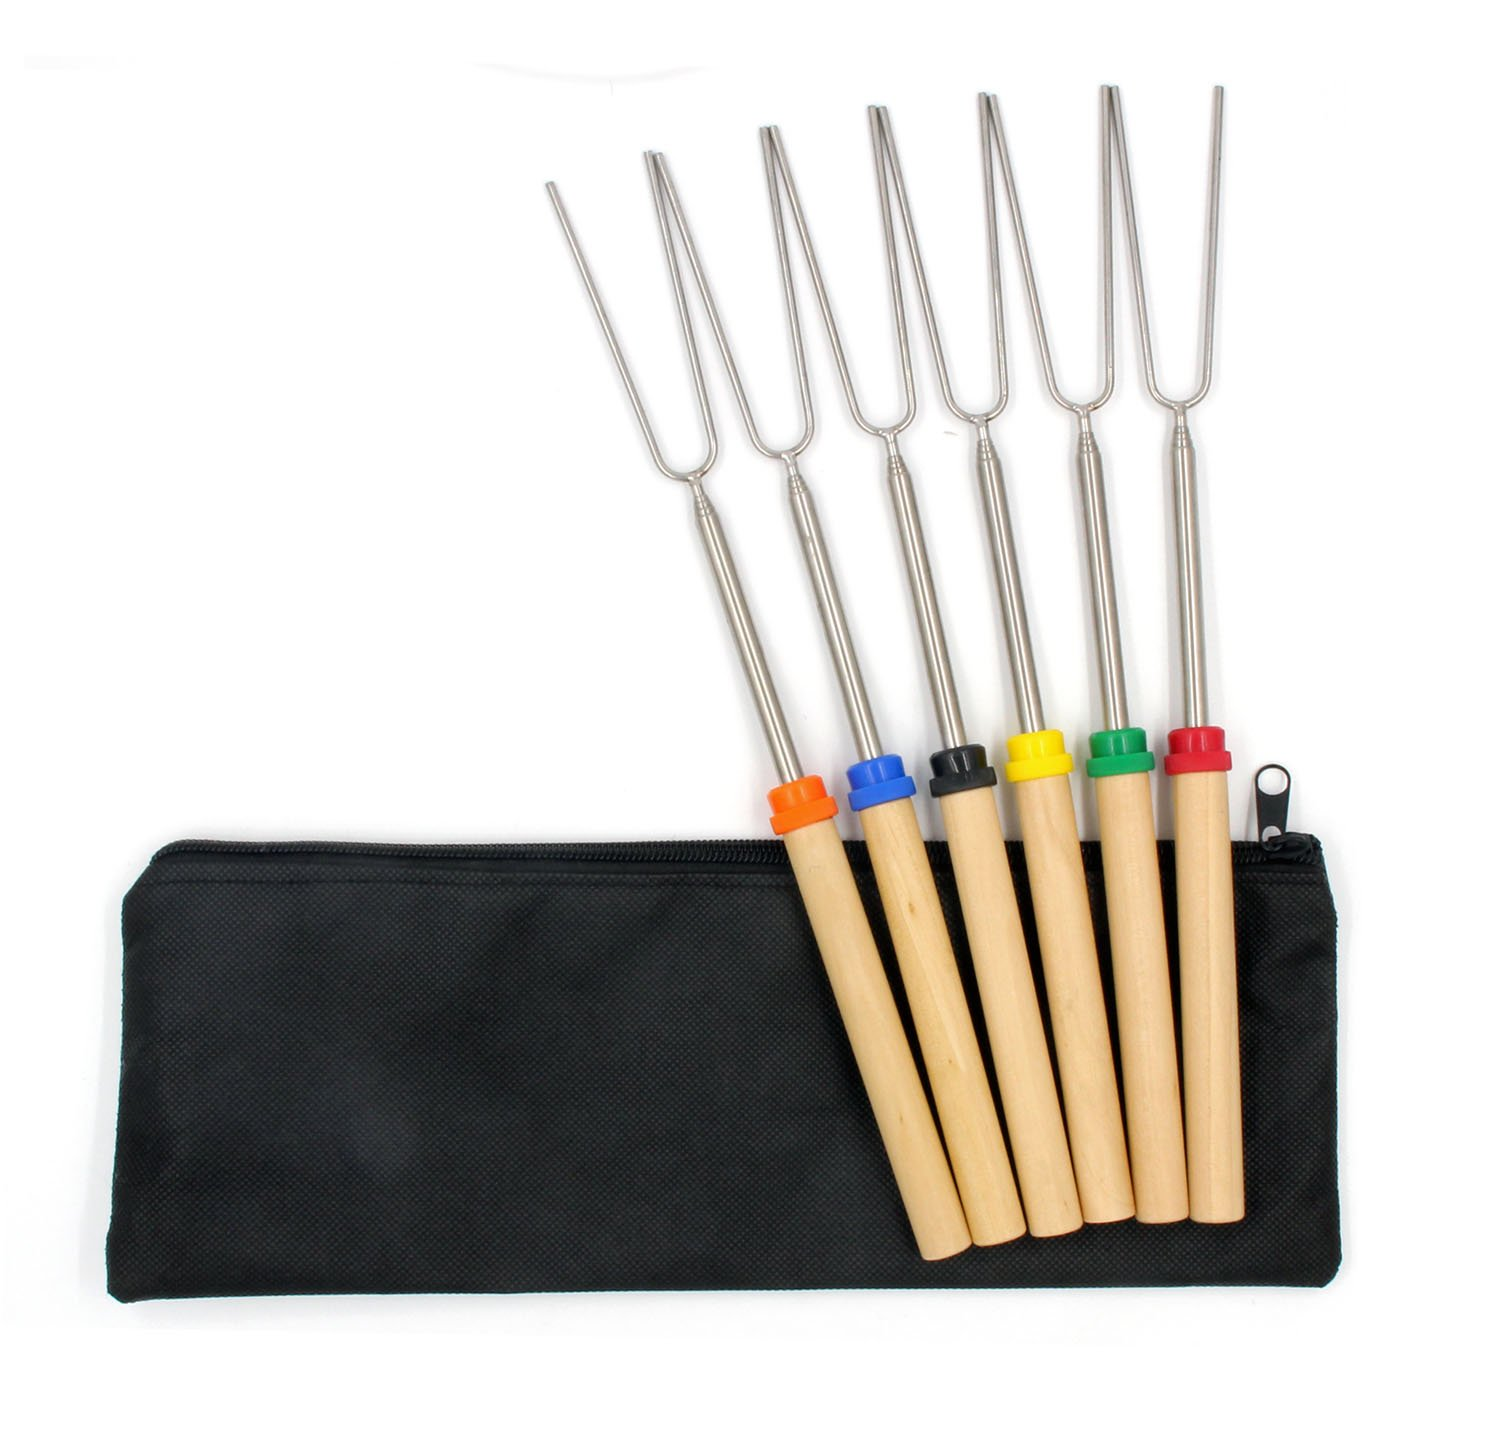 6Pcs Strengthen Marshmallow Roasting Sticks BBQ Skewers for Firepit Hot Dog Maker Camping Grill Bonfire Hotdogs Telescoping Stainless Steel Smores Kit